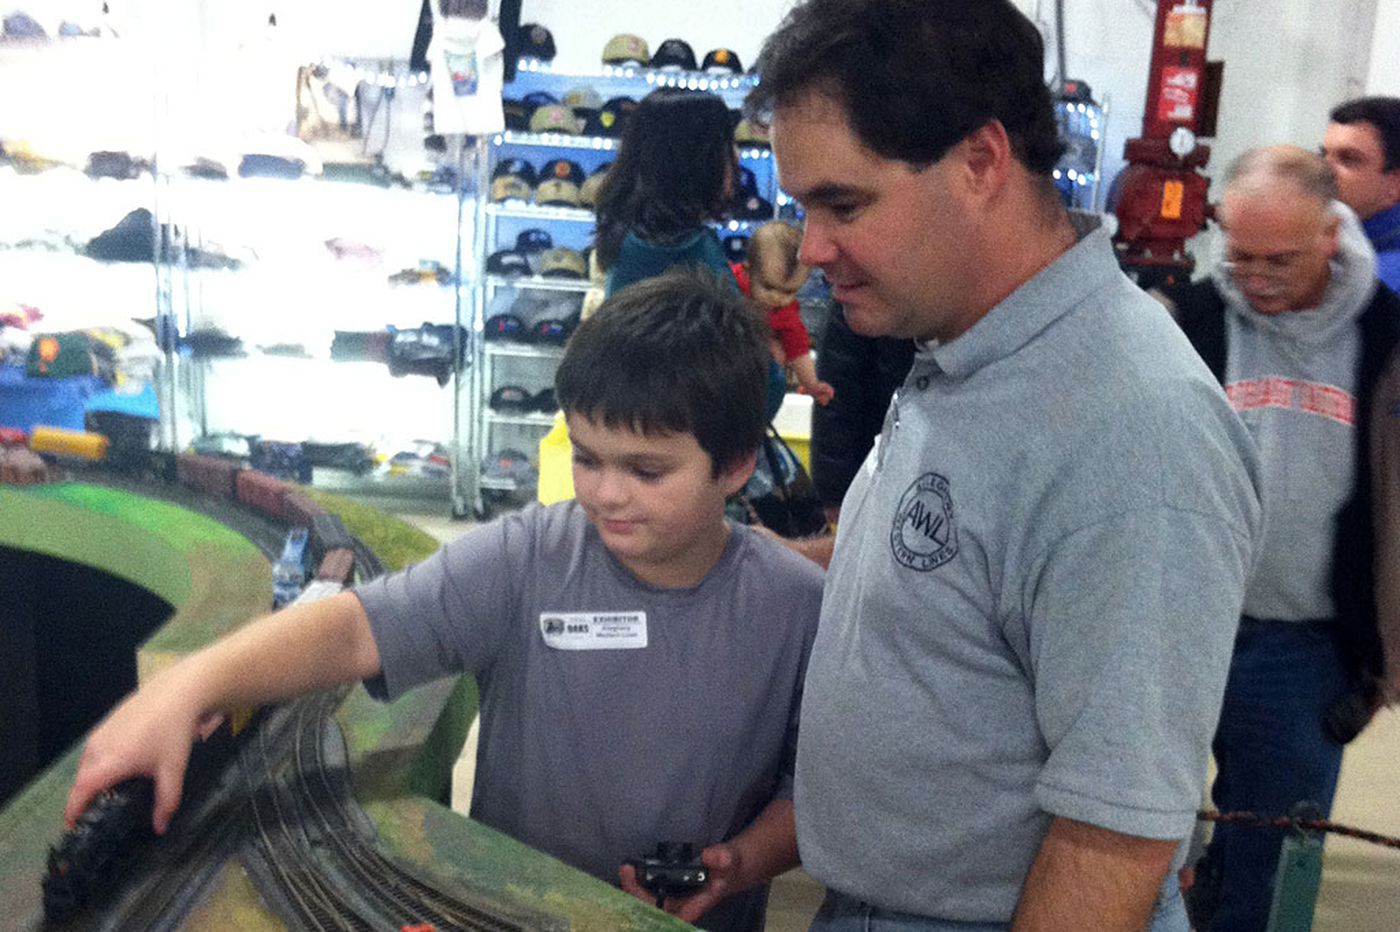 Generations of train enthusiasts enjoy Greenberg's Great Train & Toy Show